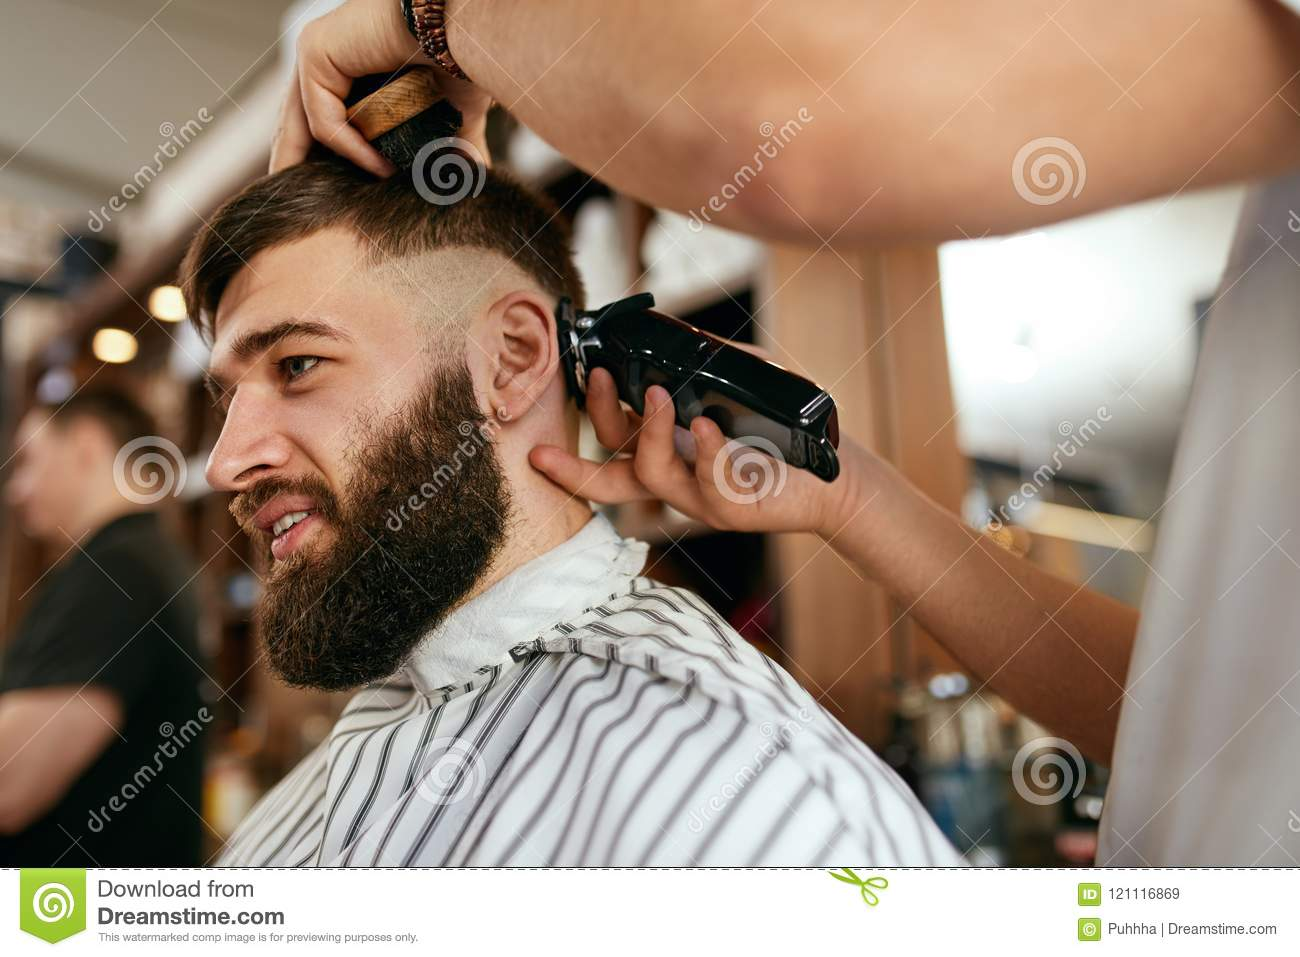 Groovy Barber Shop Men Hair Cut Barber Doing Men Fashion Hairstyle Stock Natural Hairstyles Runnerswayorg